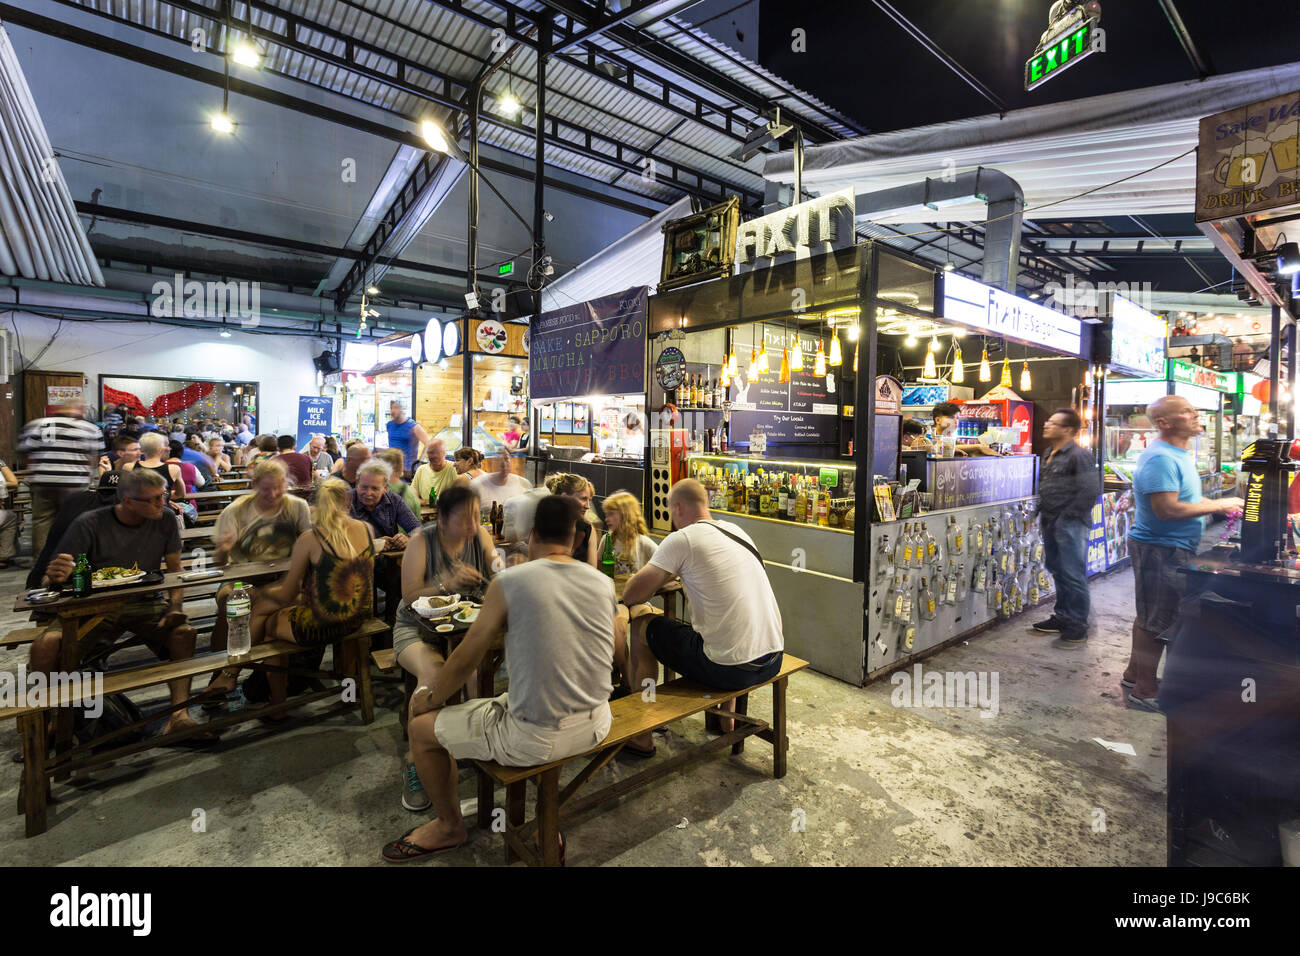 HO CHI MINH CITY, VIETNAM - APRIL 10, 2017: People have dinner in the covered Ben Thanh street food market in Ho - Stock Image